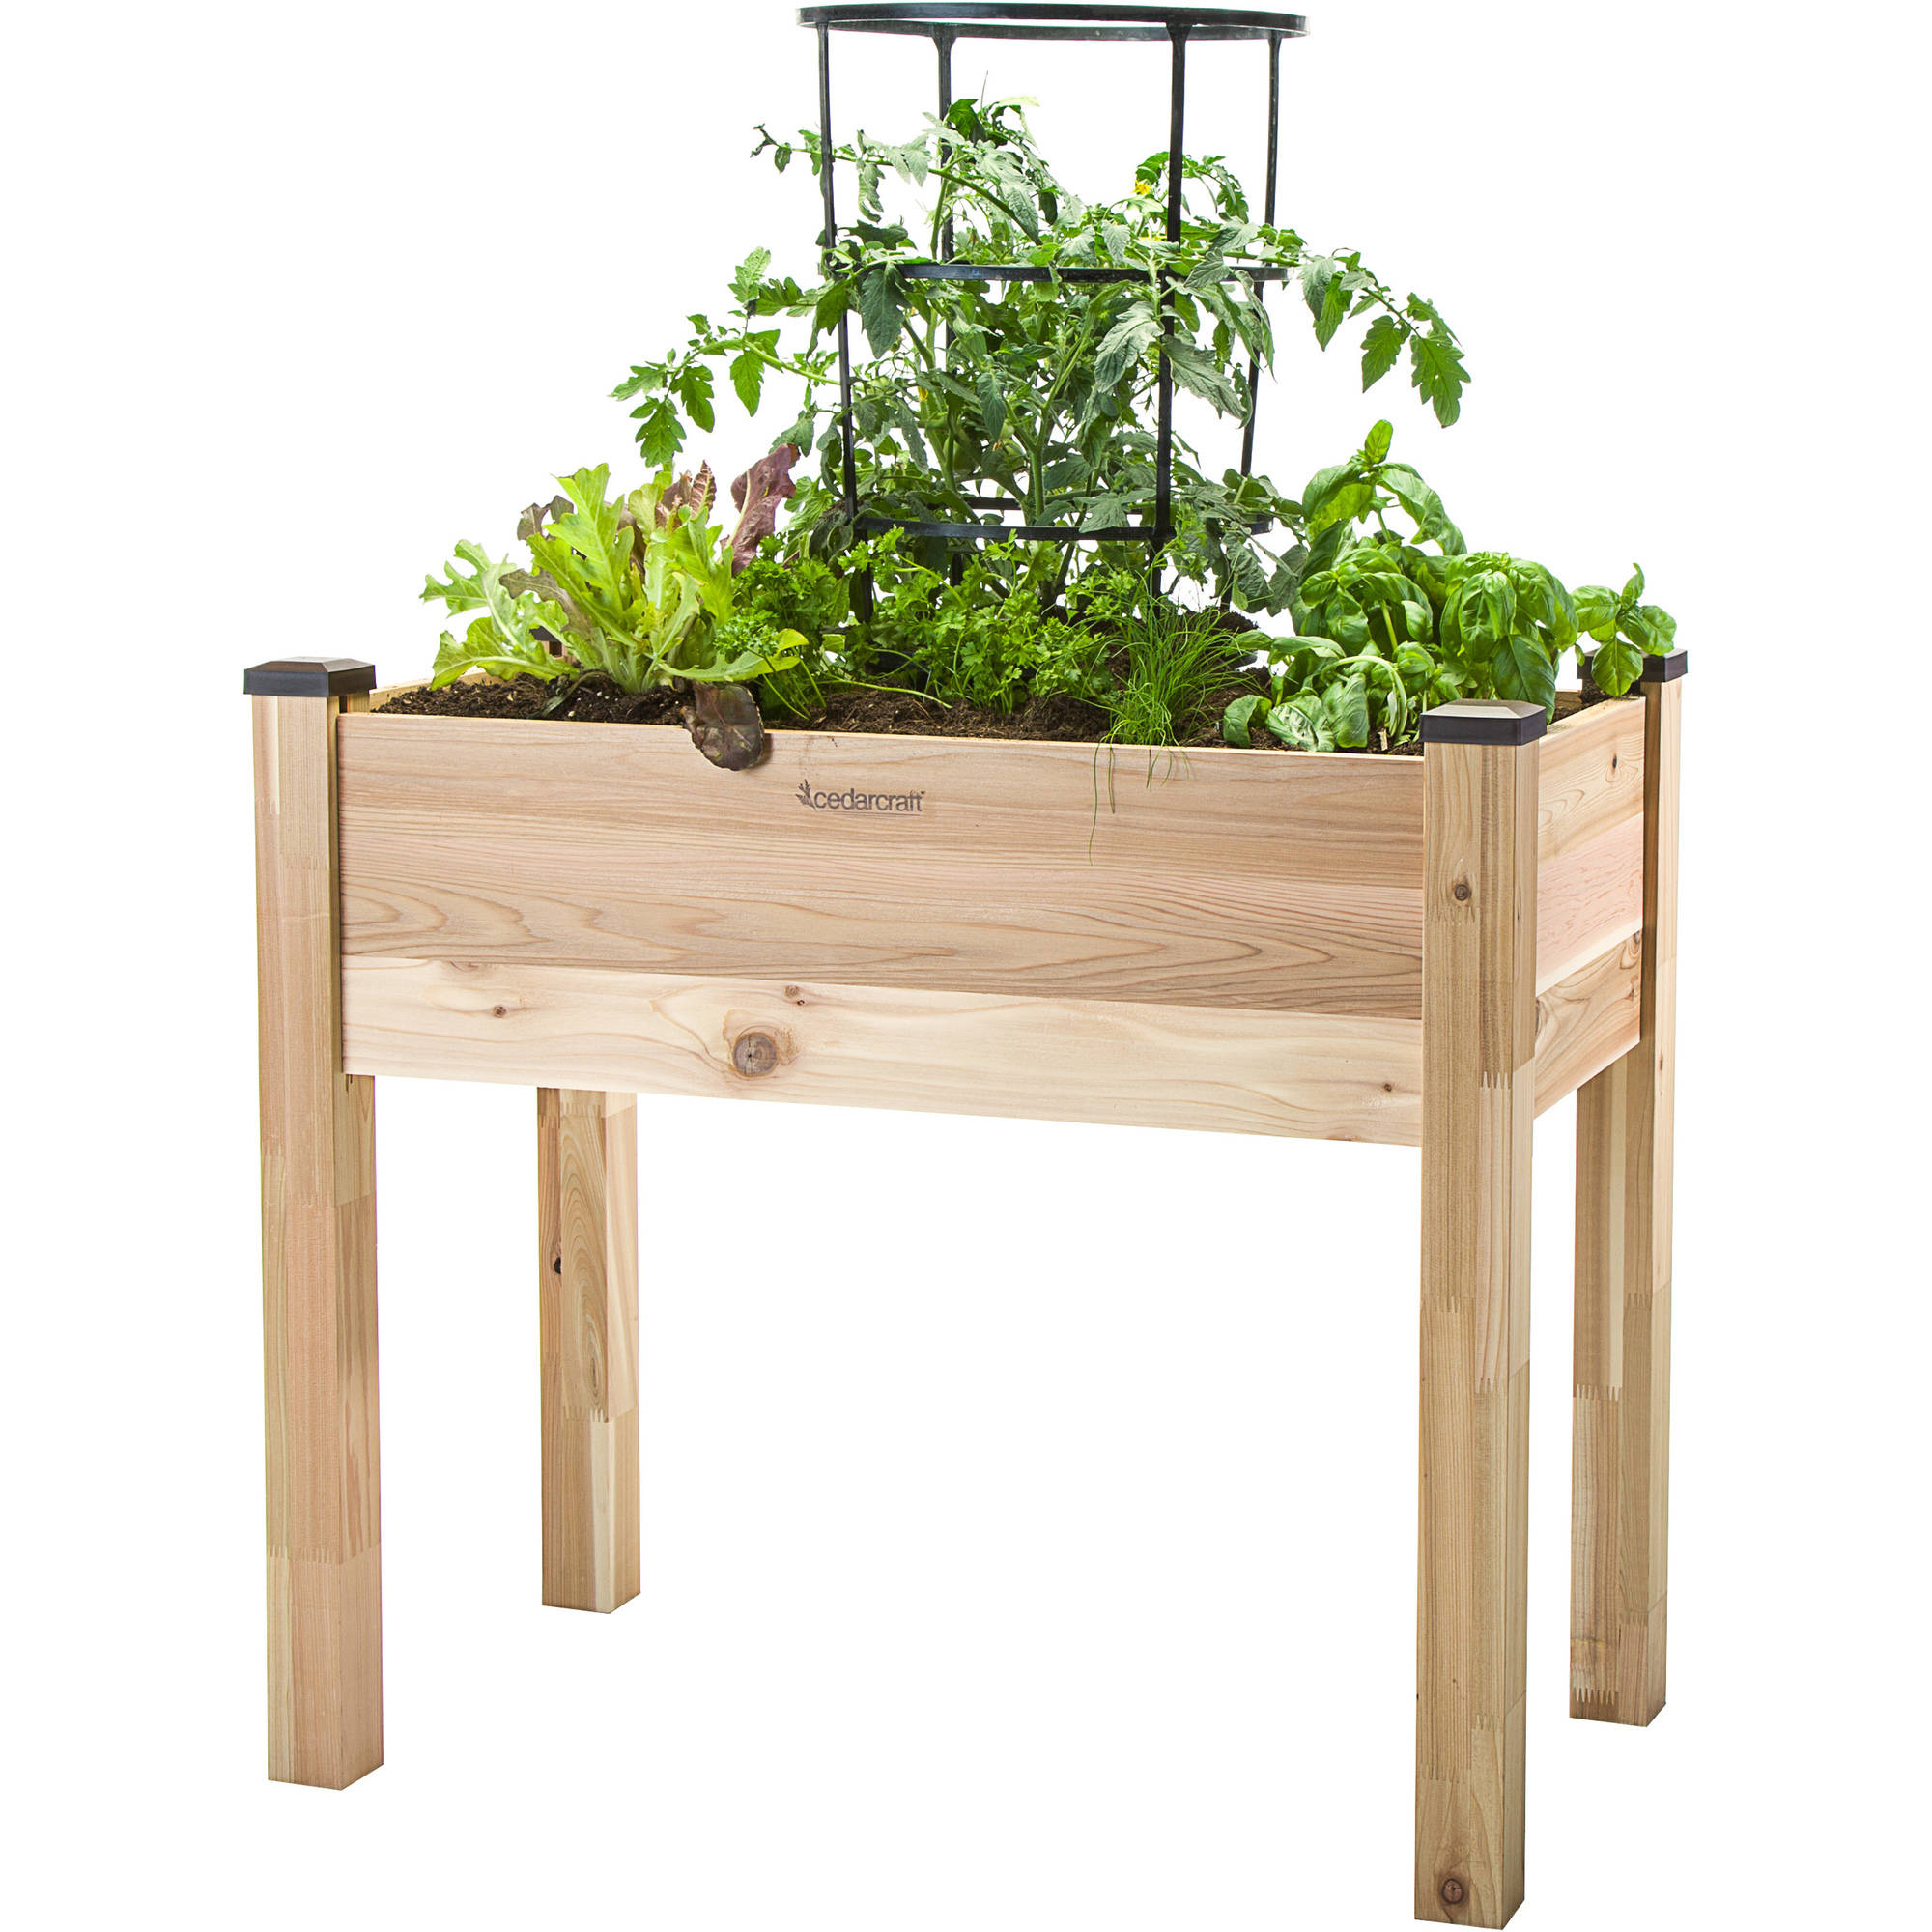 "CedarCraft 18"" x 34"" Elevate Planter by Dobi and Associates"